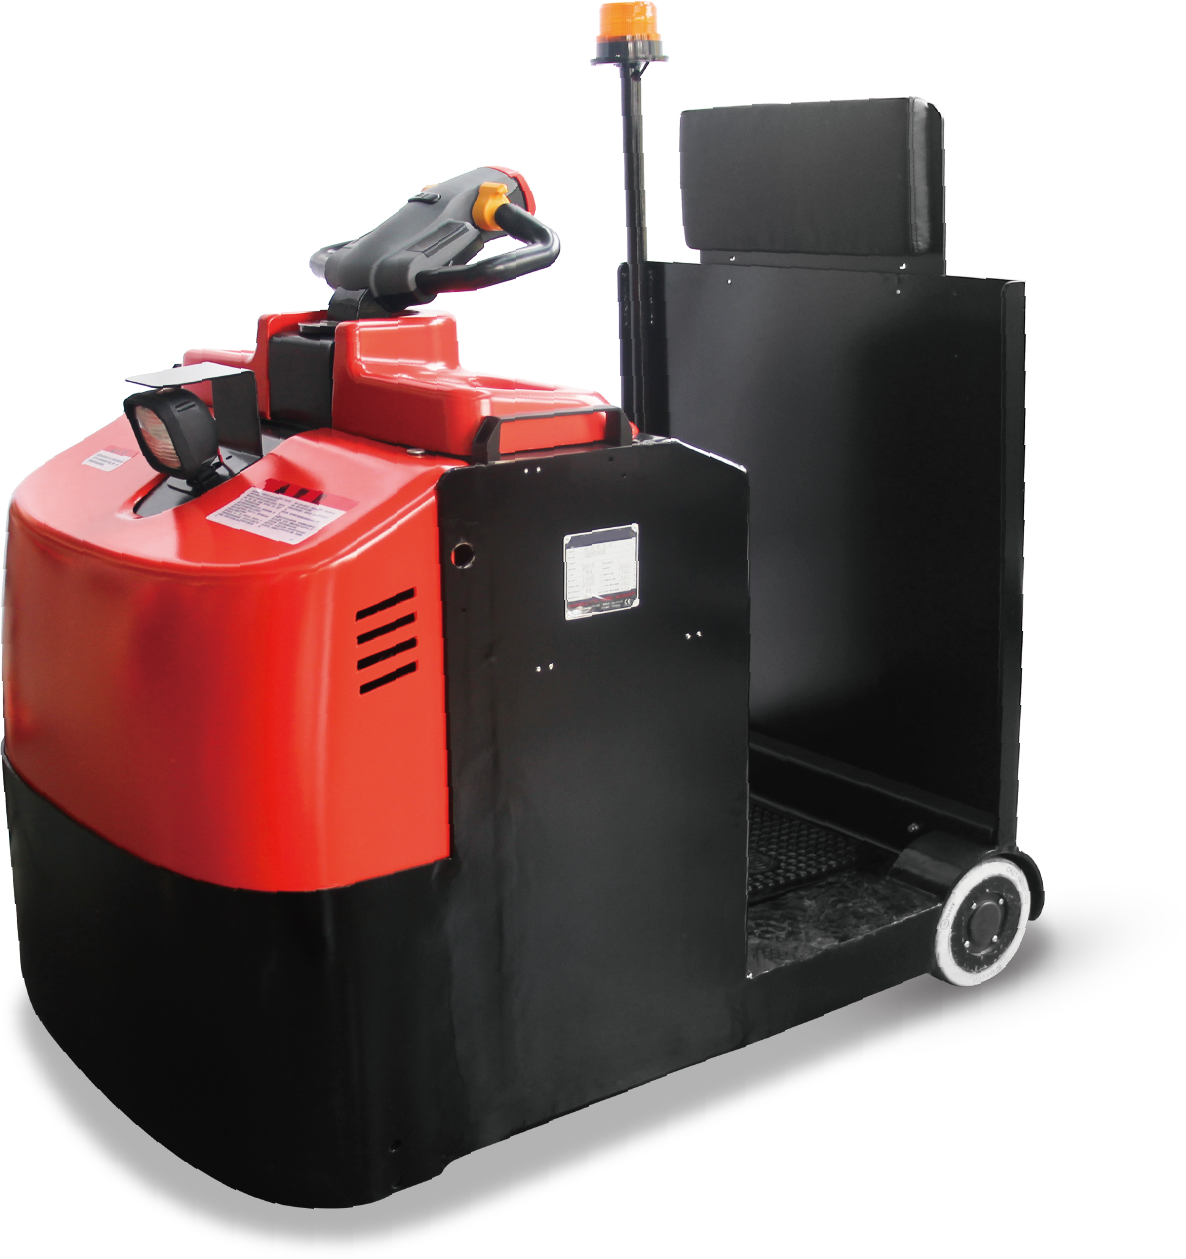 RED-LIFT electric tow tractor with great quality